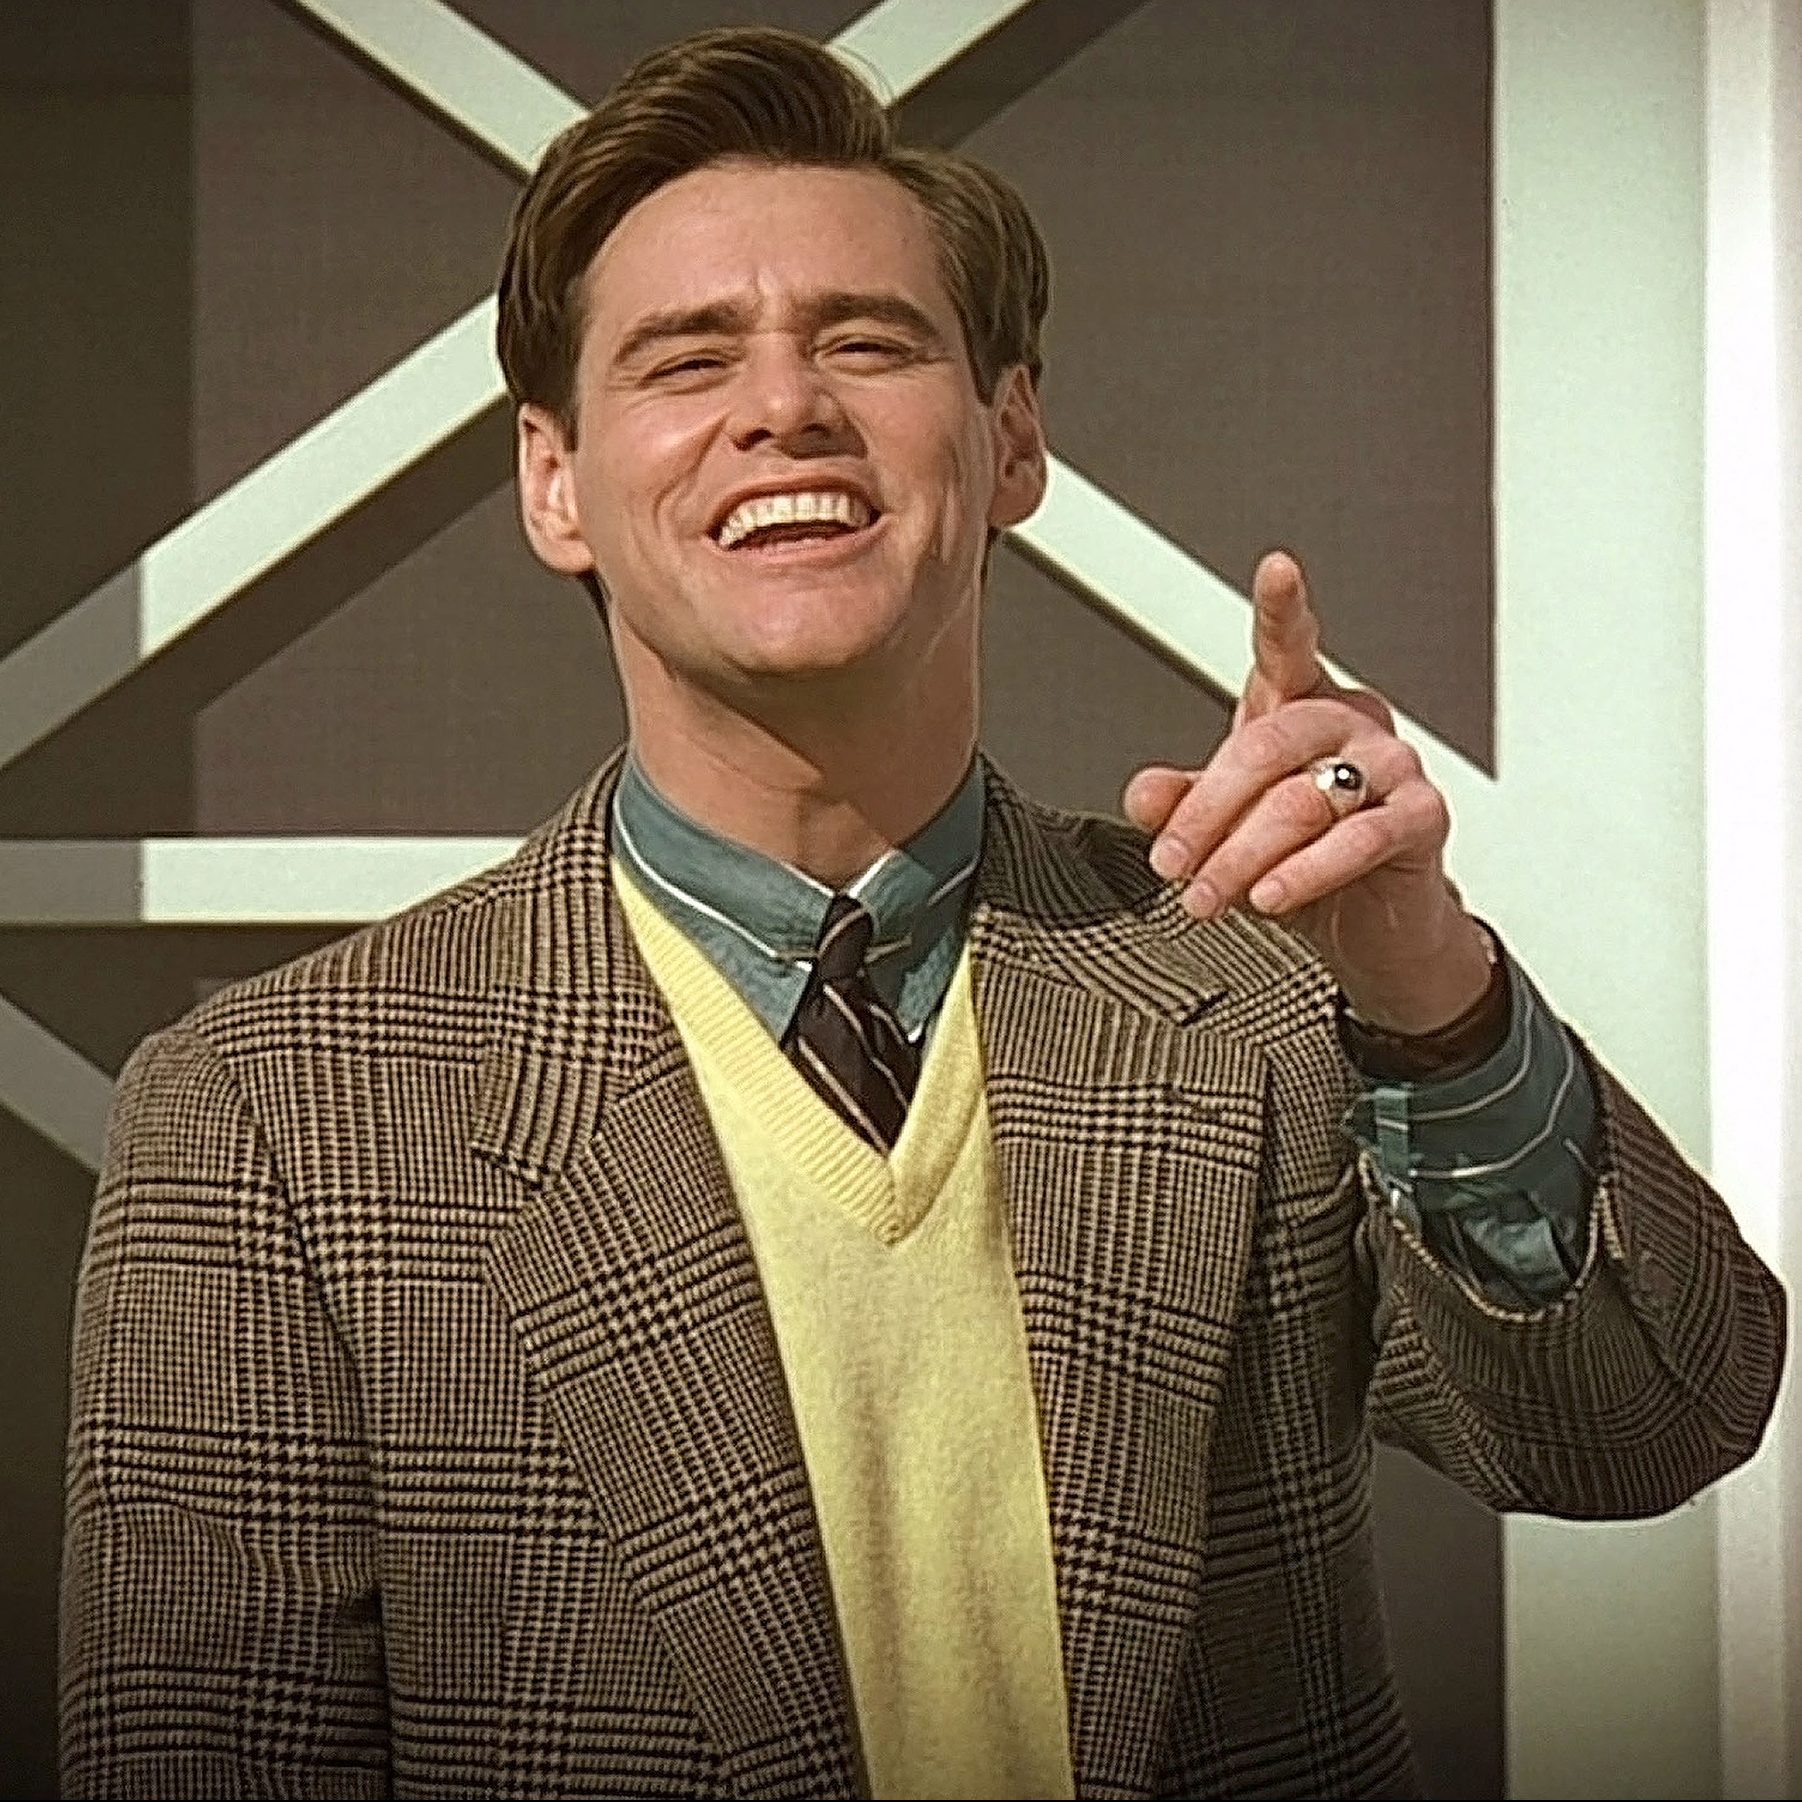 jim carrey truman show e1574770723880 Stay Tuned For 20 Amazing Facts About The Truman Show